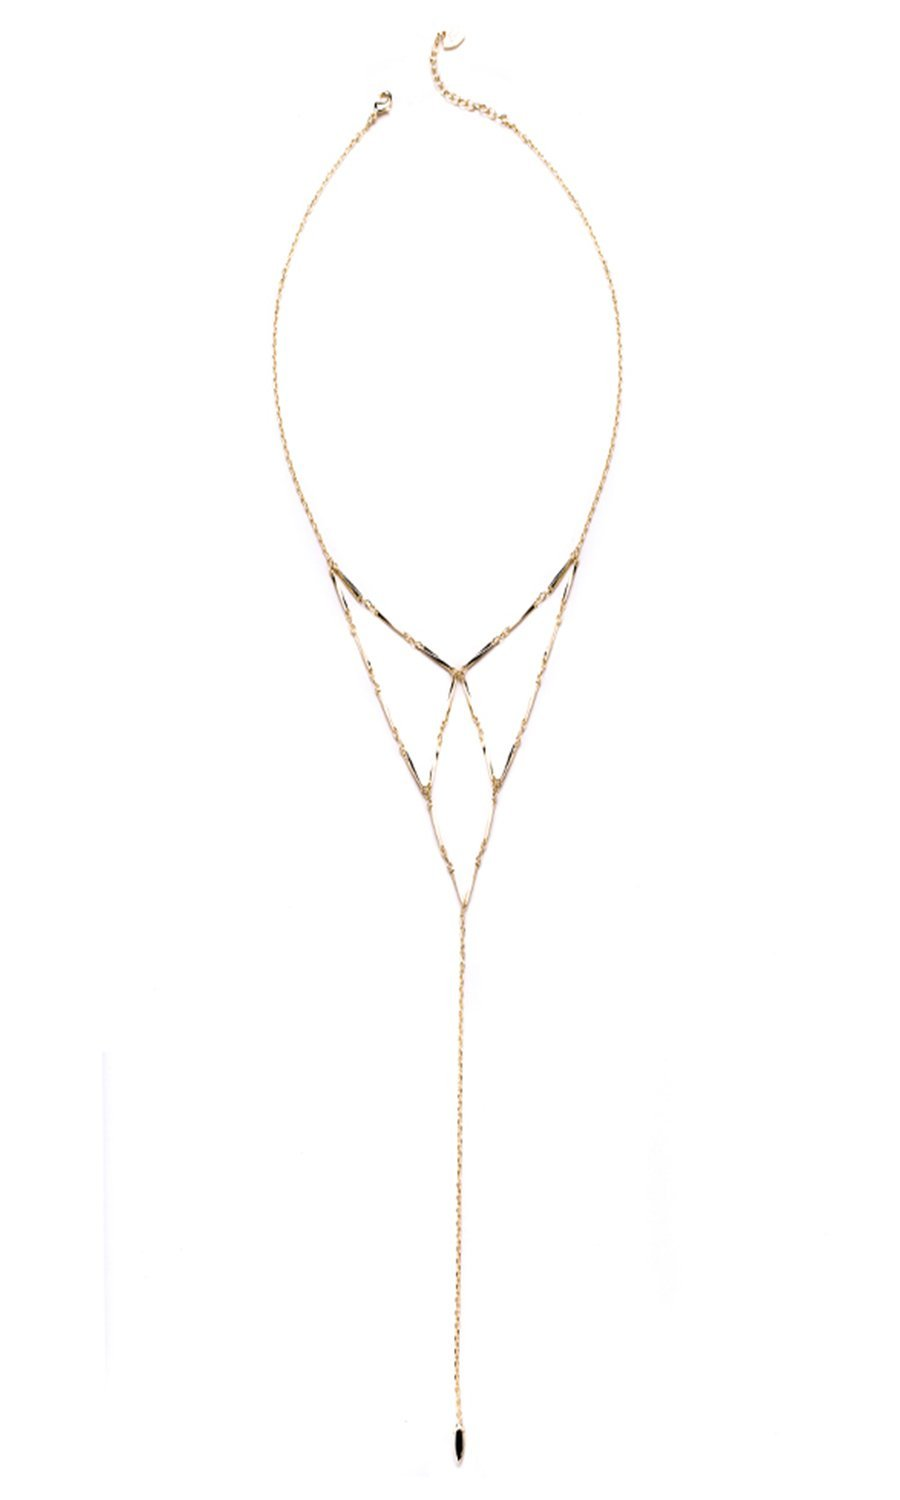 NATALIE WOOD  DESIGNS Free Spirit Lariat Necklace- Gold